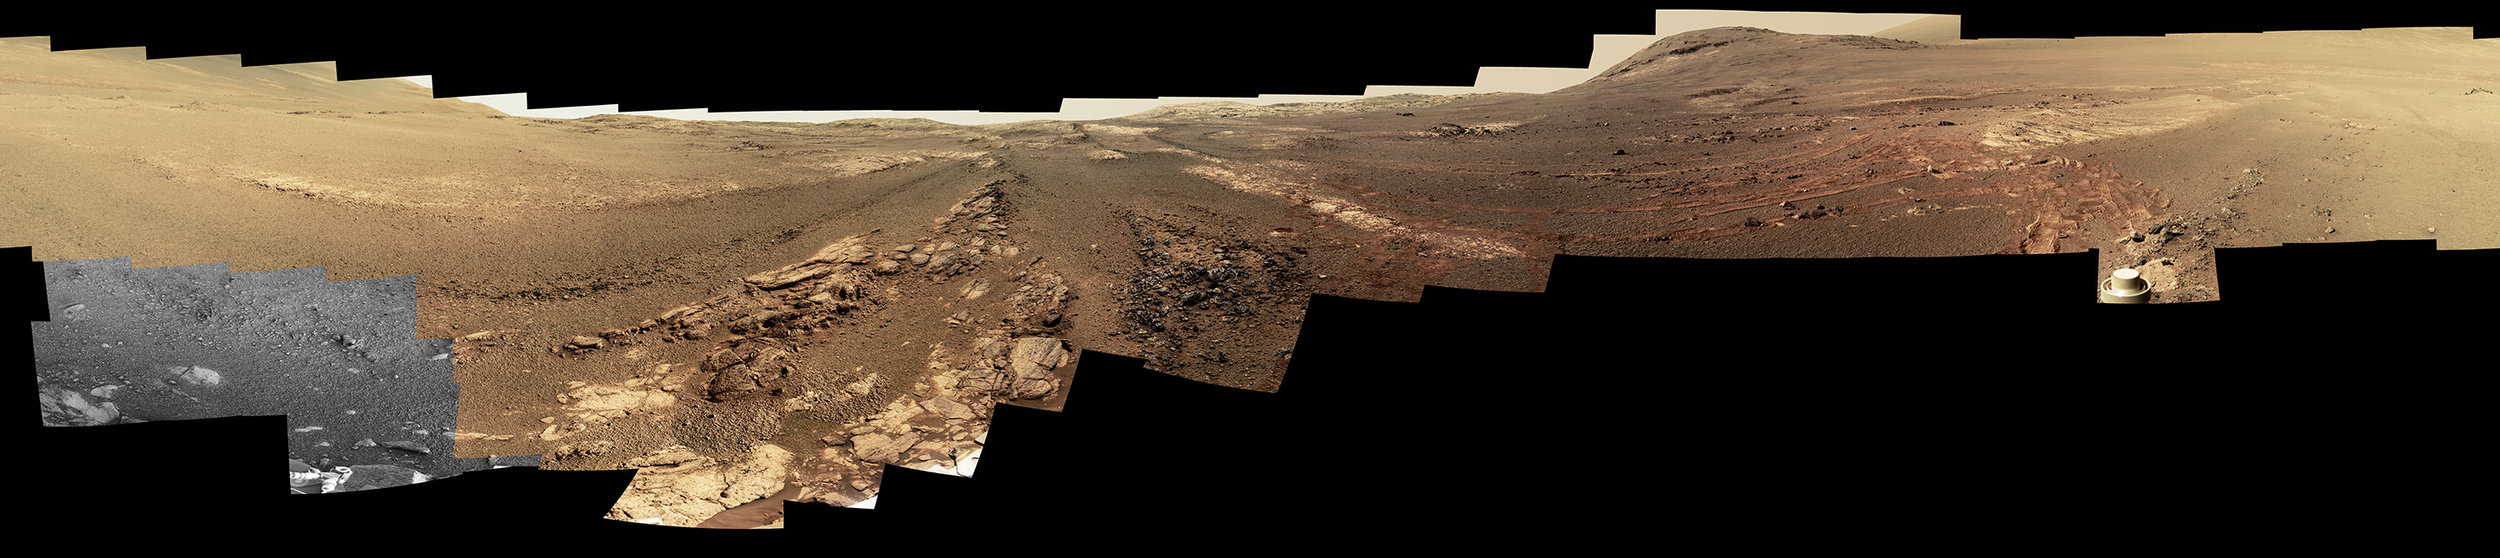 This image is an edited version of the last 360-degree panorama taken by the Opportunity rover's Pancam from May 13 through June 10, 2018. The version of the scene is presented in approximate true color. - Image Credit: NASA/JPL-Caltech/Cornell/ASU (click image to enlarge)